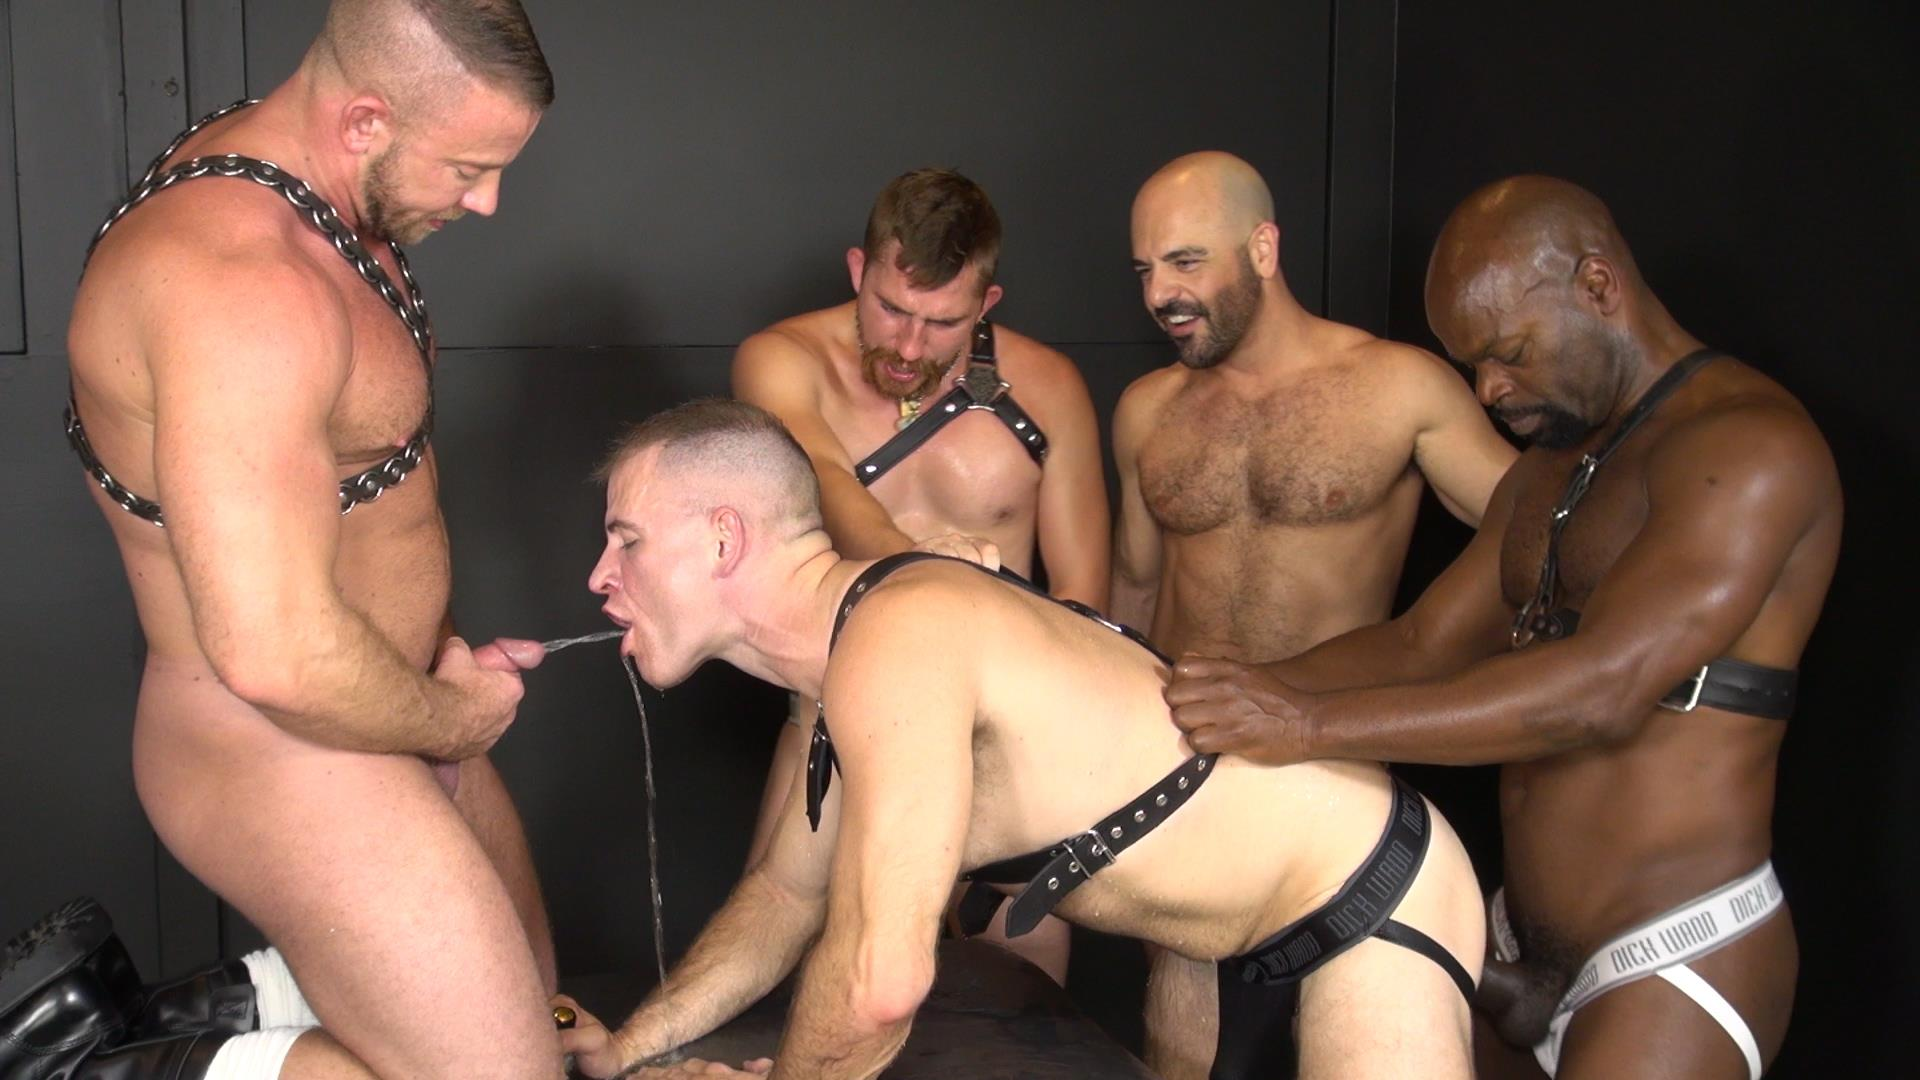 gay massageguide club erotica